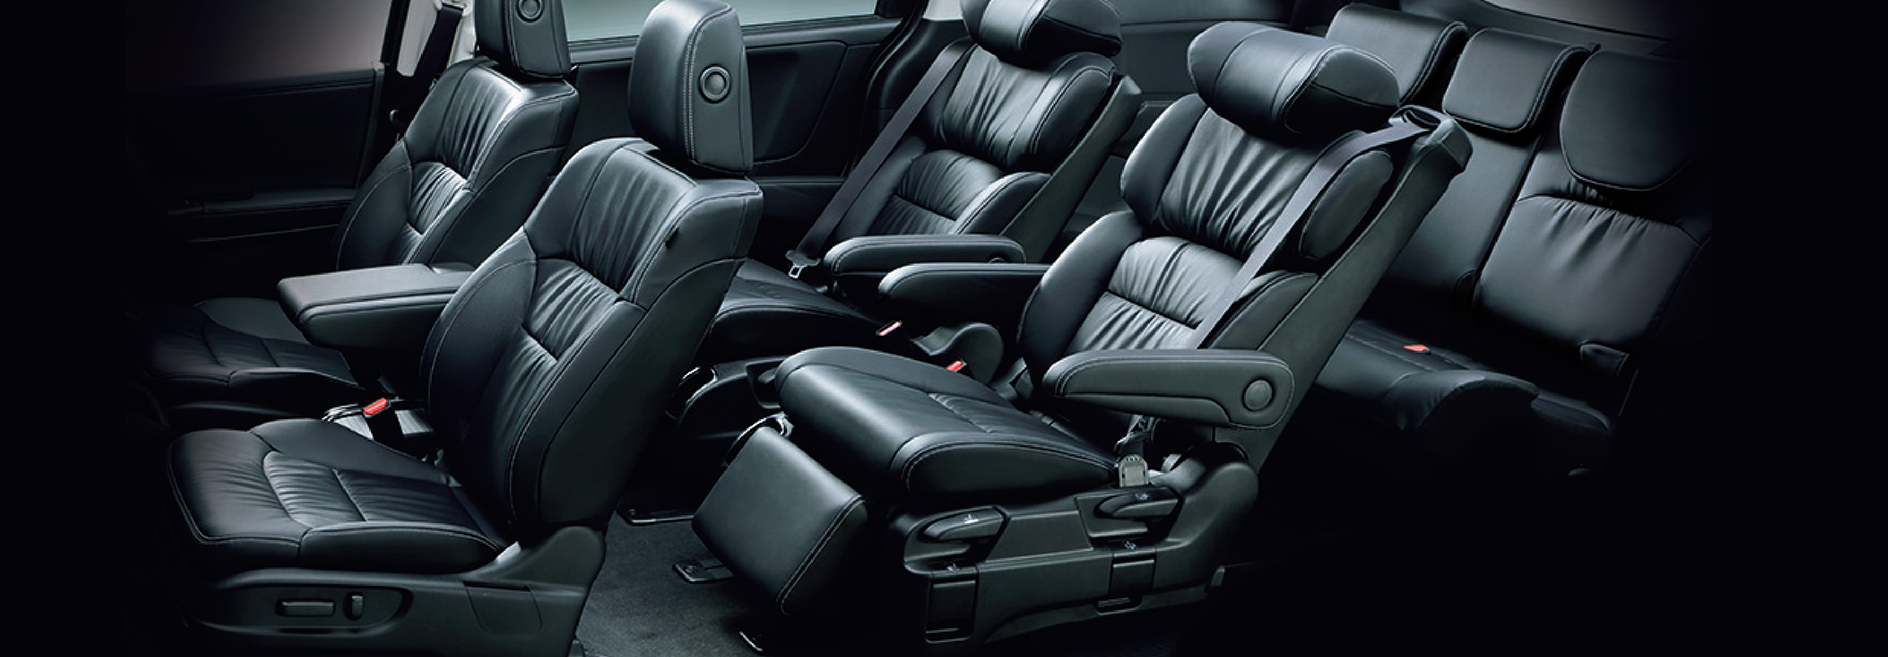 ODYSSEY FACTORY LEATHER SEATS